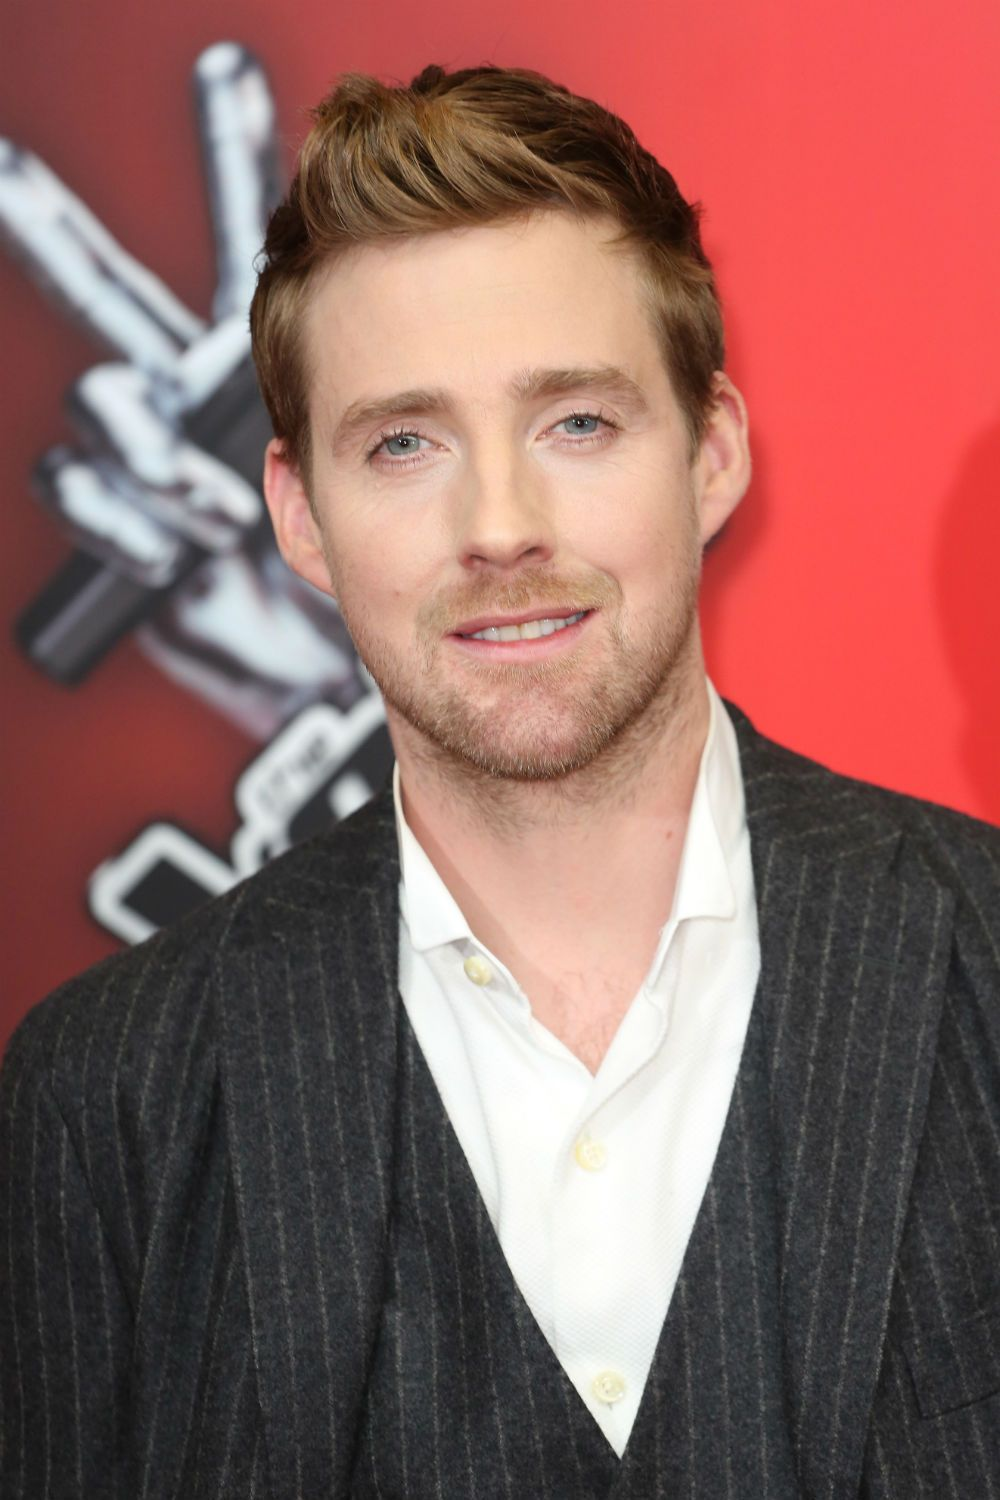 When did Ricky Wilson get hot?!